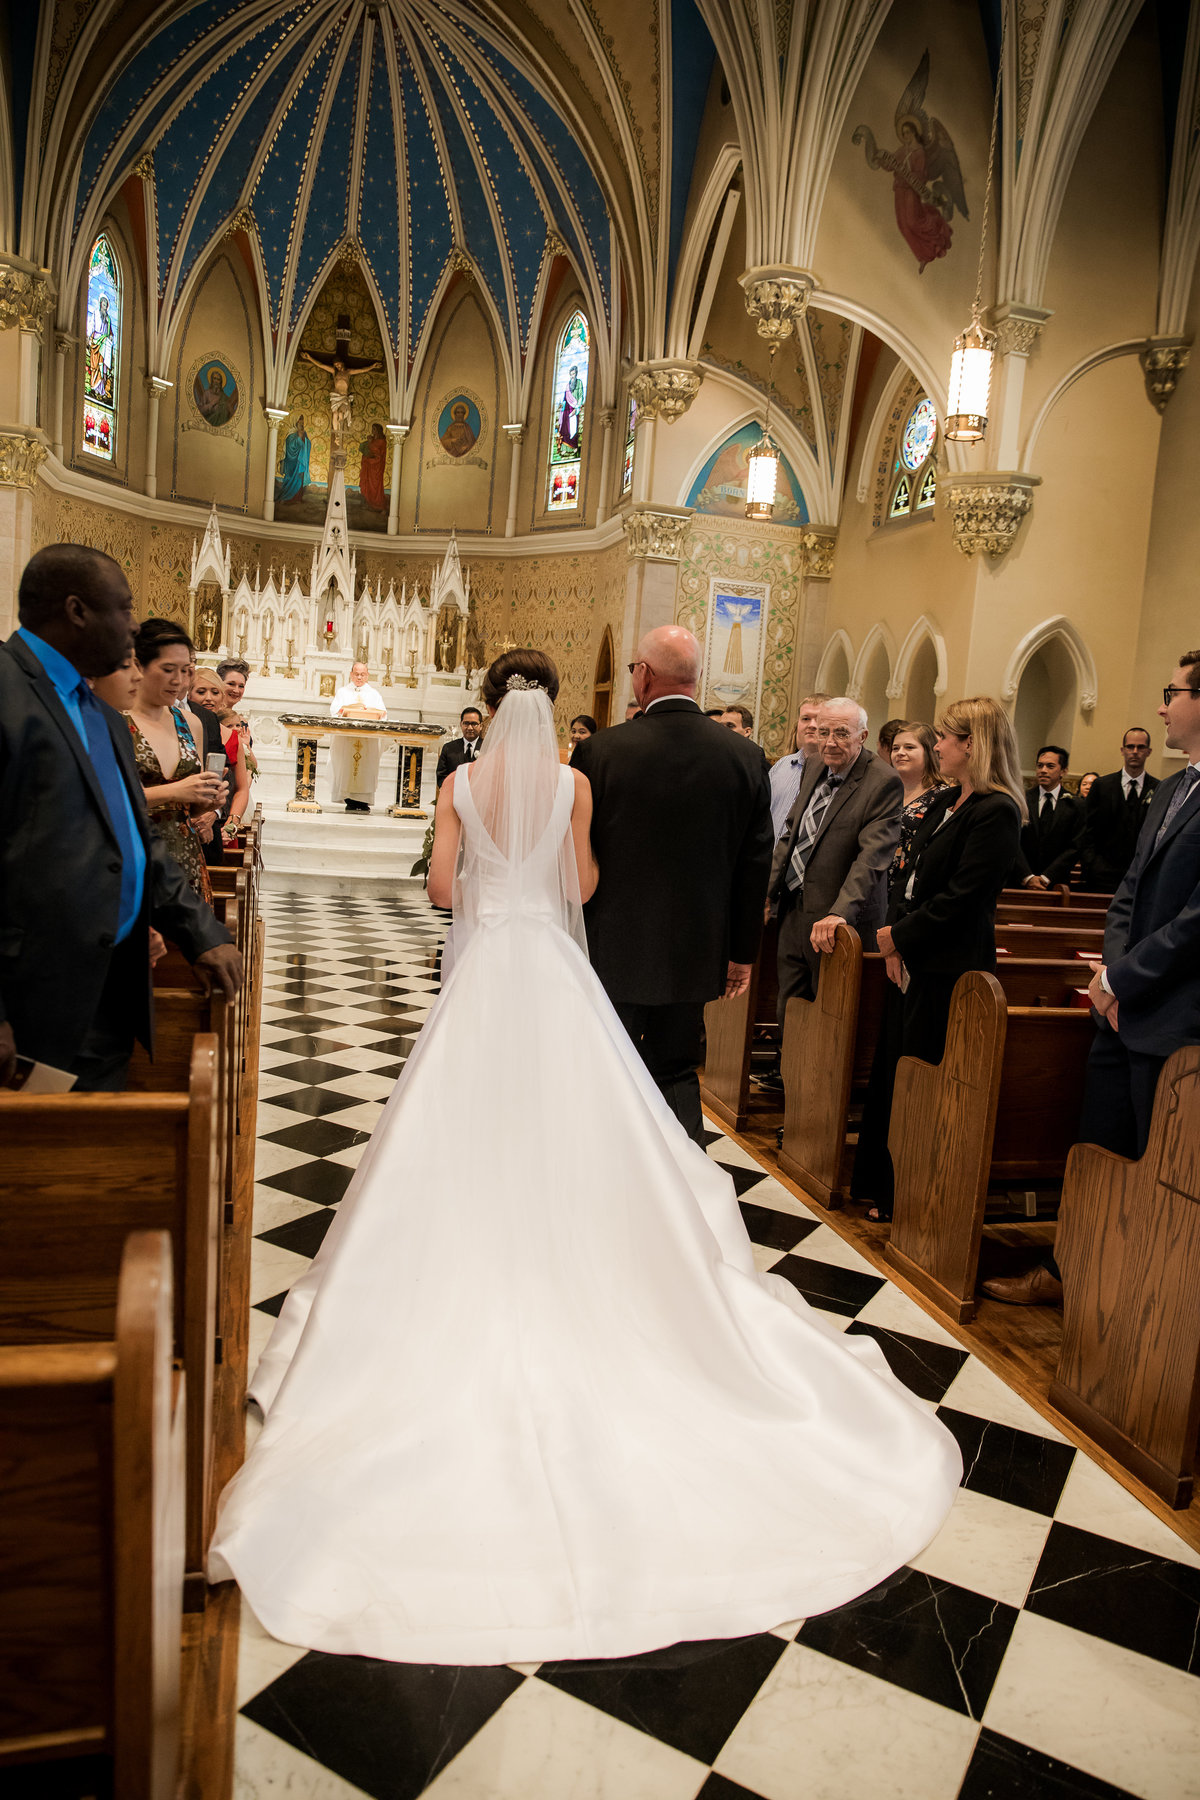 Virginia Bride - Virginia Weddings - Virginia Wedding Photographer - Virginia Wedding Photographers - Soutehrn Bride - Church Wedding - Catholic Wedding - Classic Bride - Nashville Wedding Photographer - Nashville Wedding Photographers010